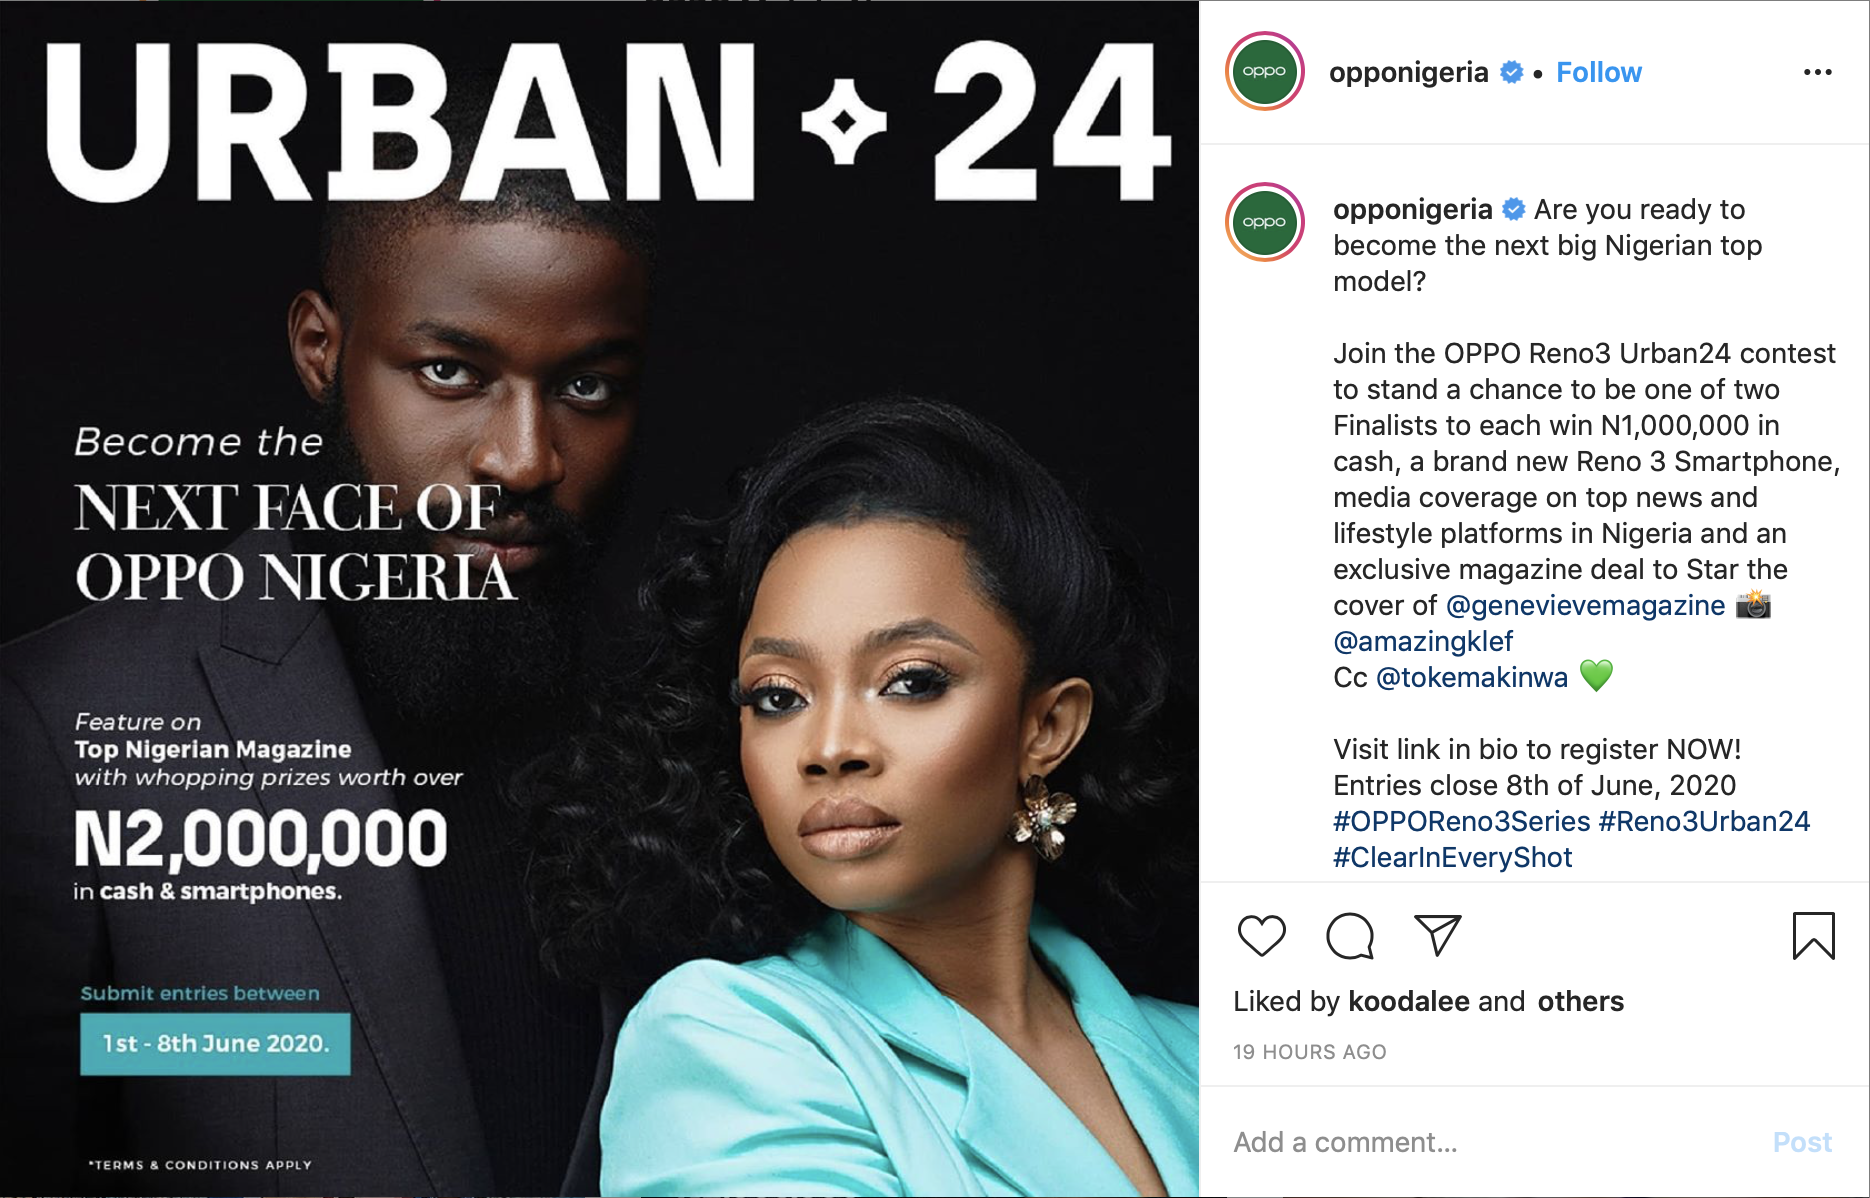 Become The Next Nigerian Top Model in The OPPO Reno3 Urban24 Contest lindaikejisblog1